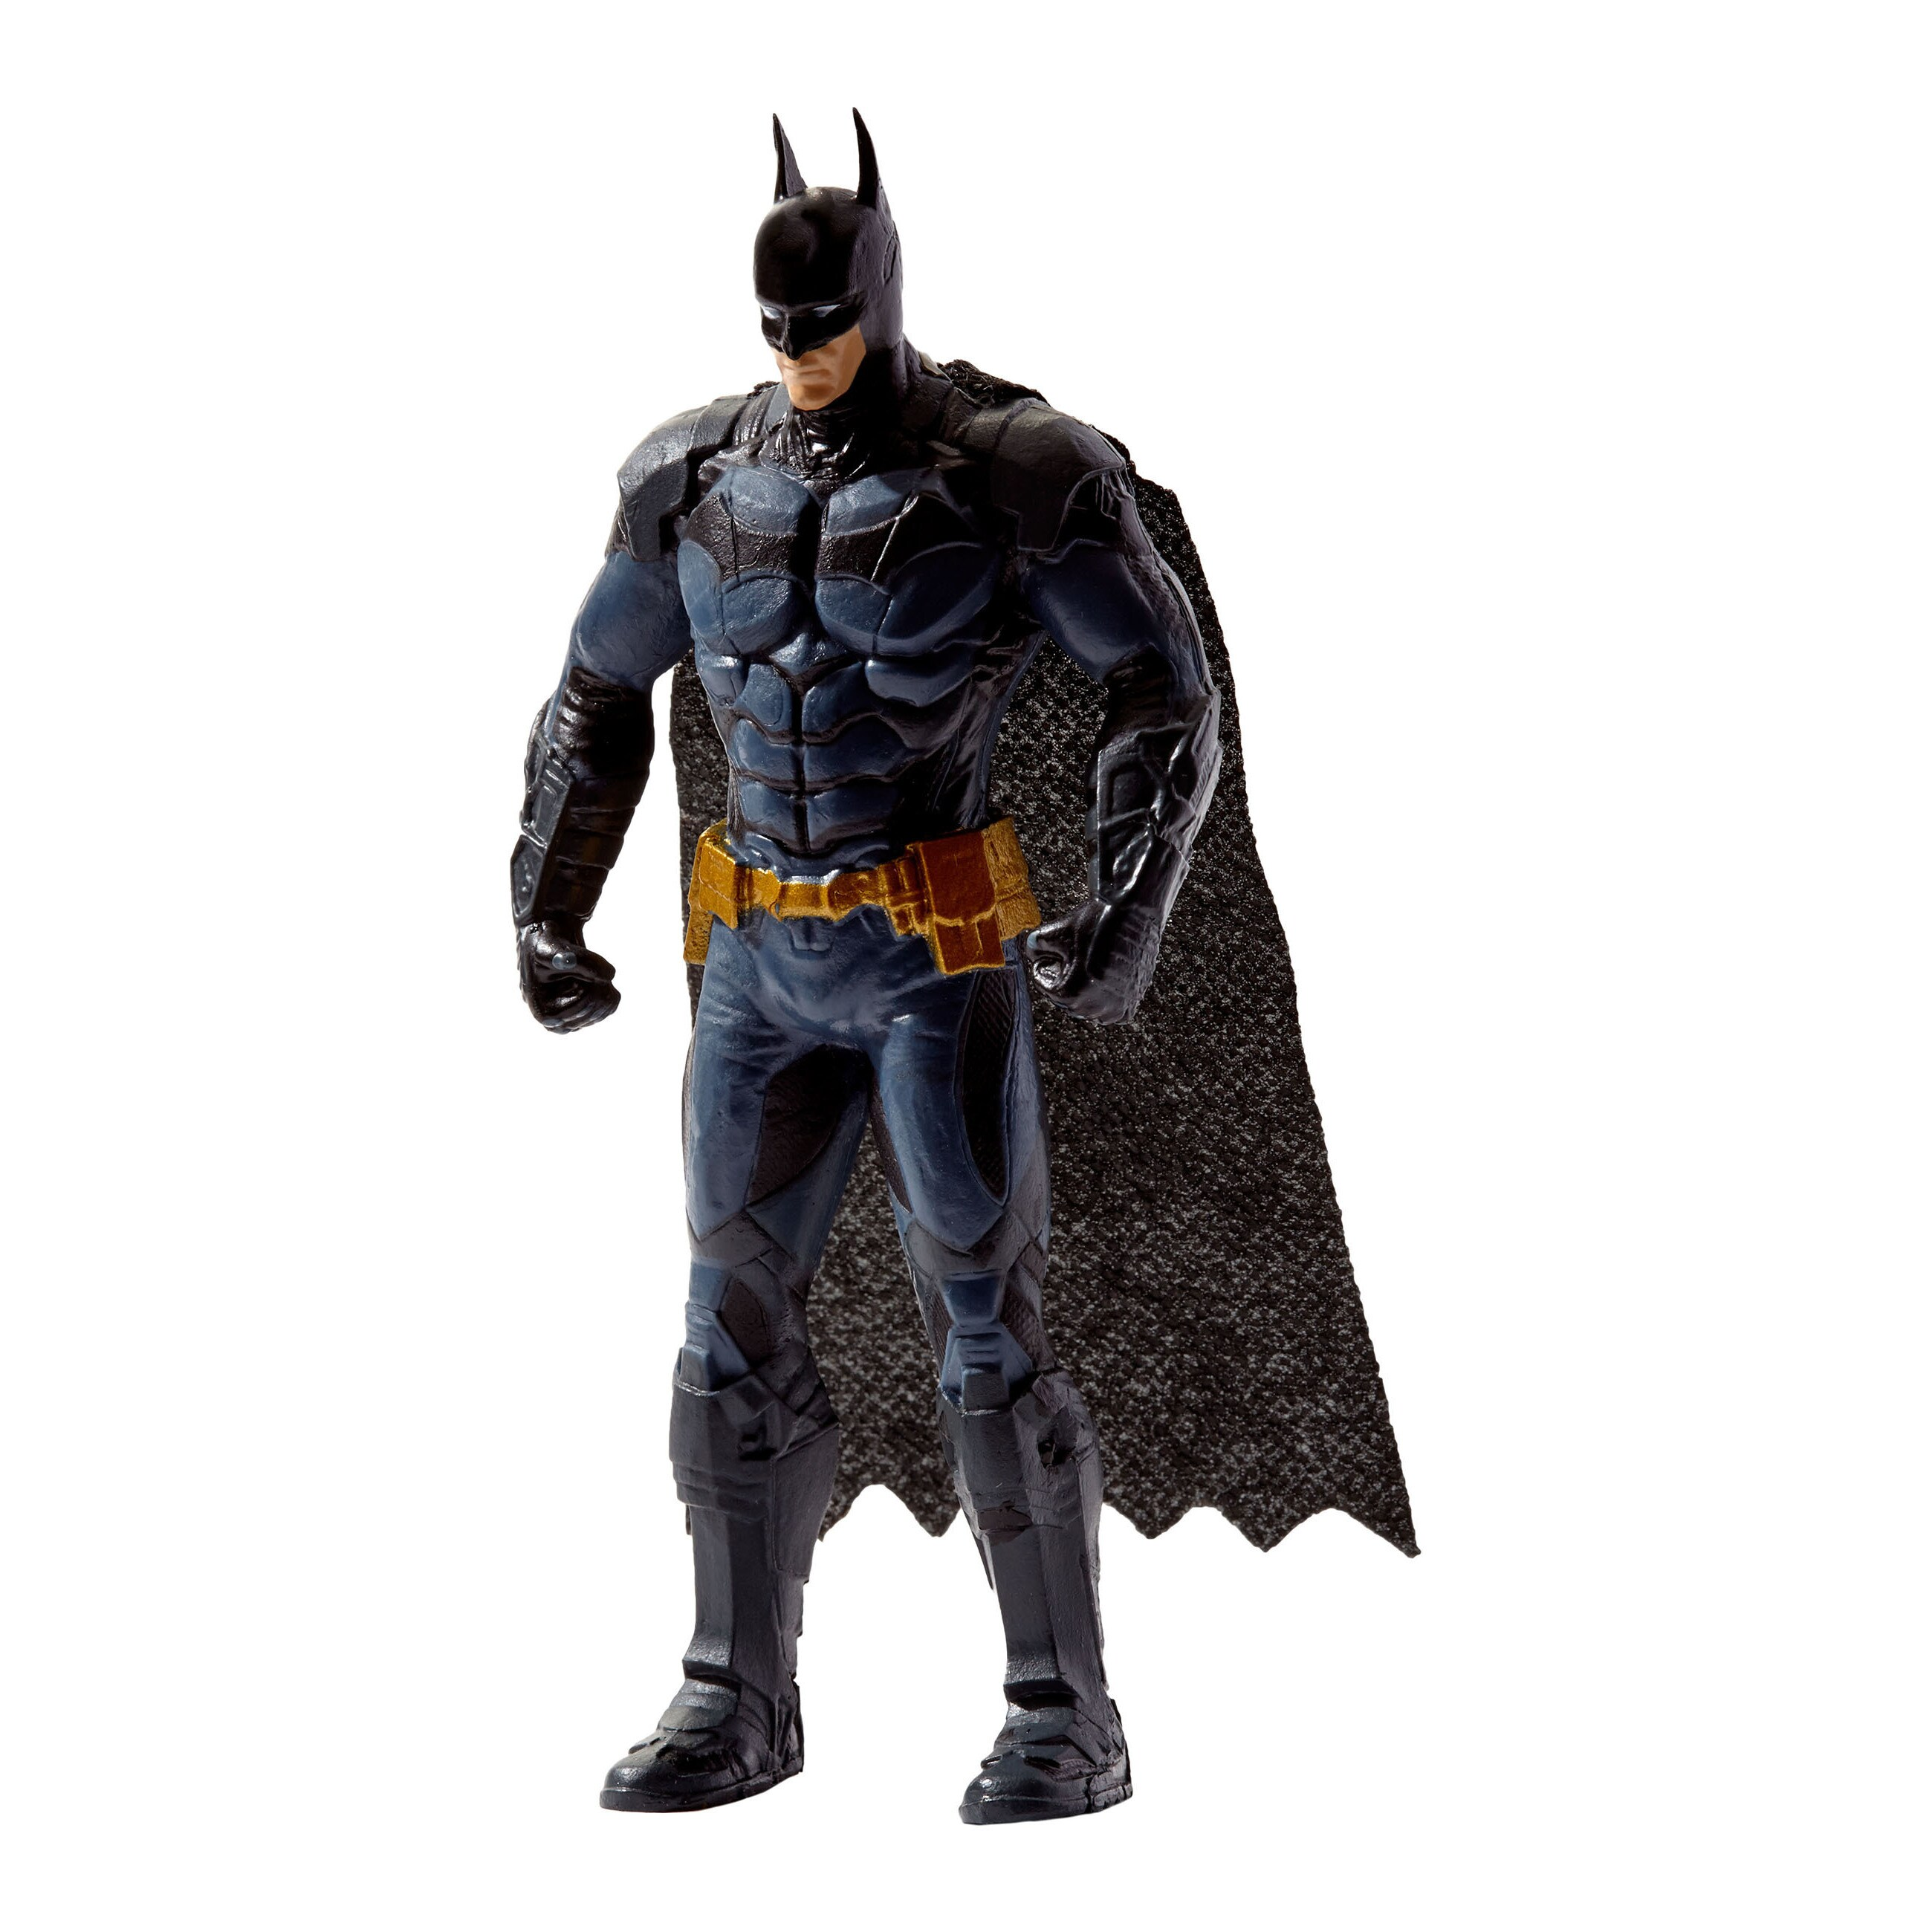 DC Comics Batman Bendable Figure from Arkham Knight Series 6 inch Action Figure